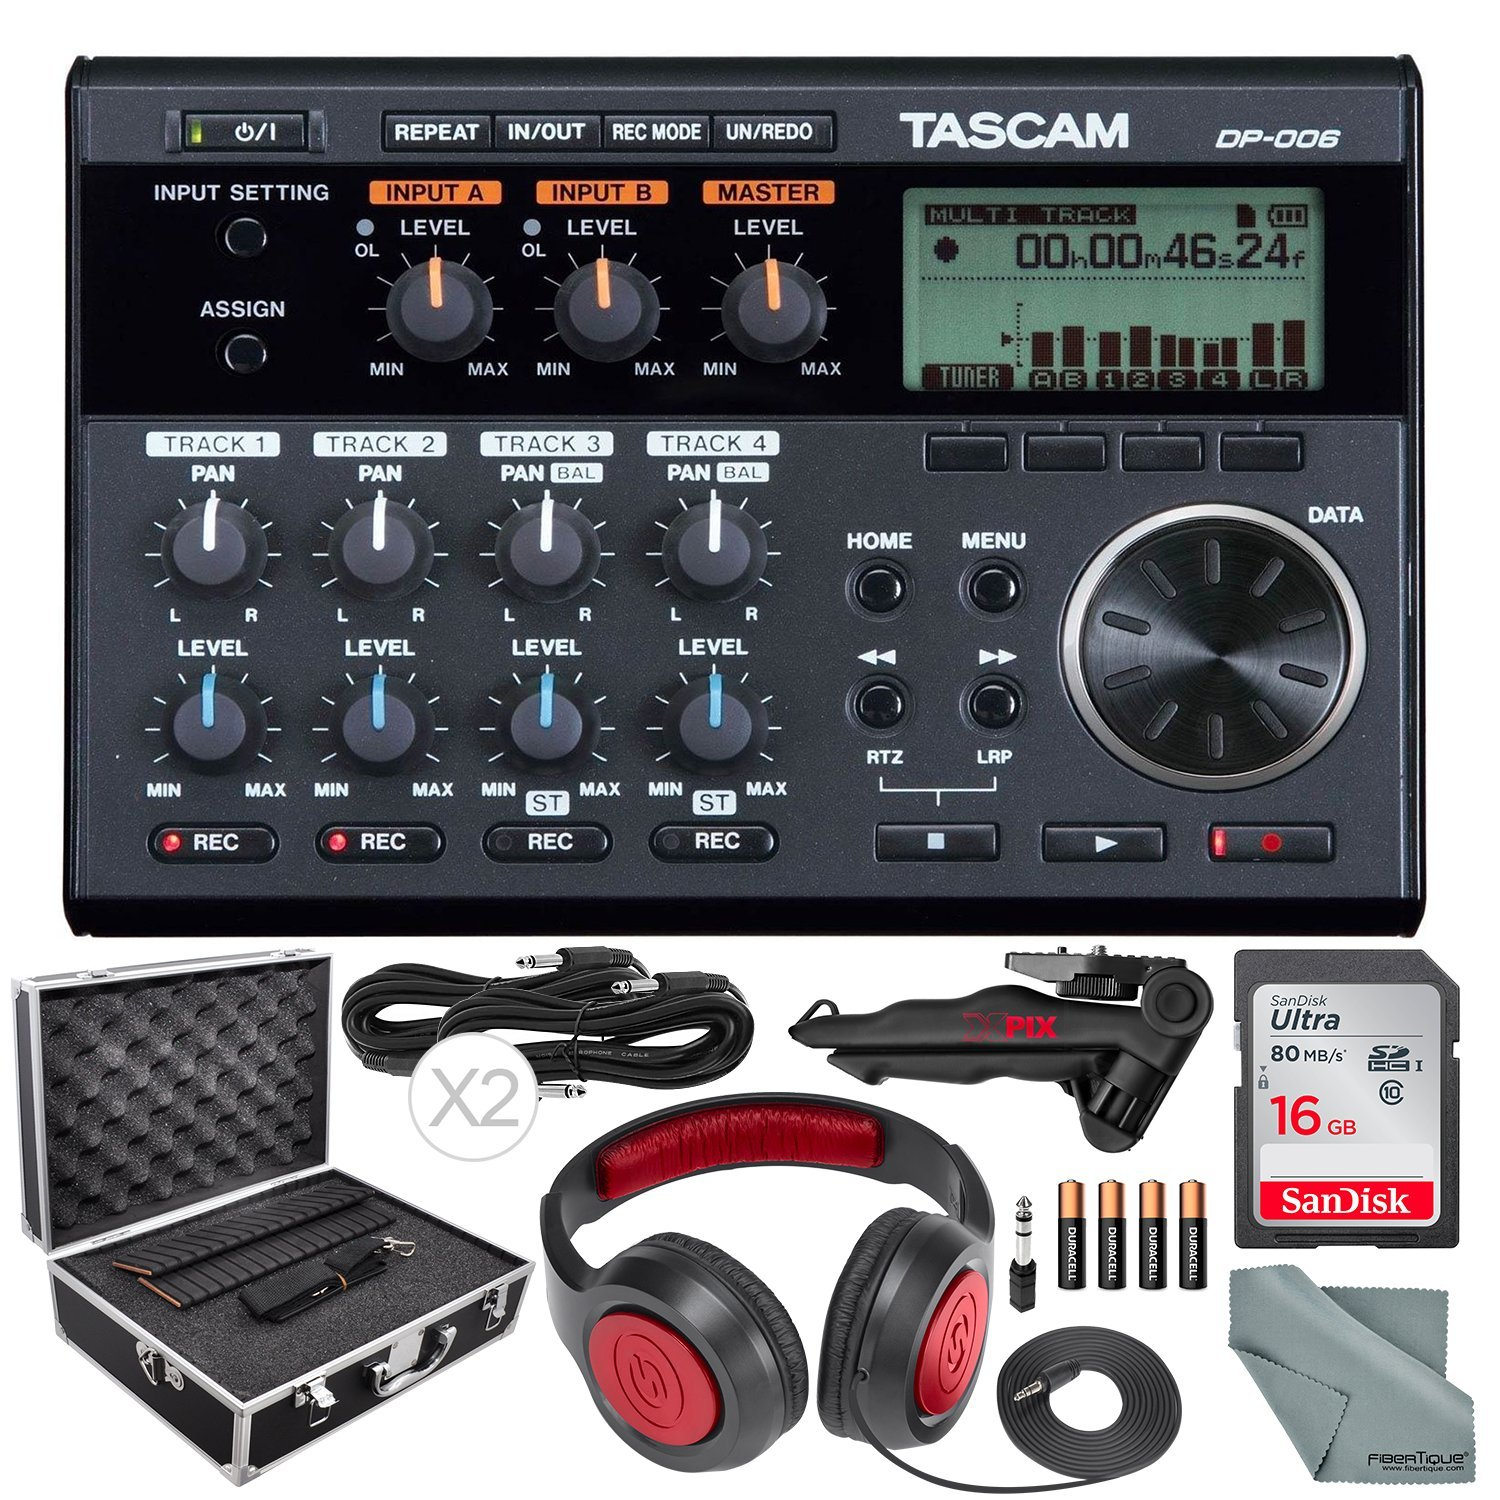 Tascam DP-006 6-track Digital Pocketstudio and Deluxe Accessory Bundle w/ Headphones + Case + Cables + 16GB + Xpix Tripod + More